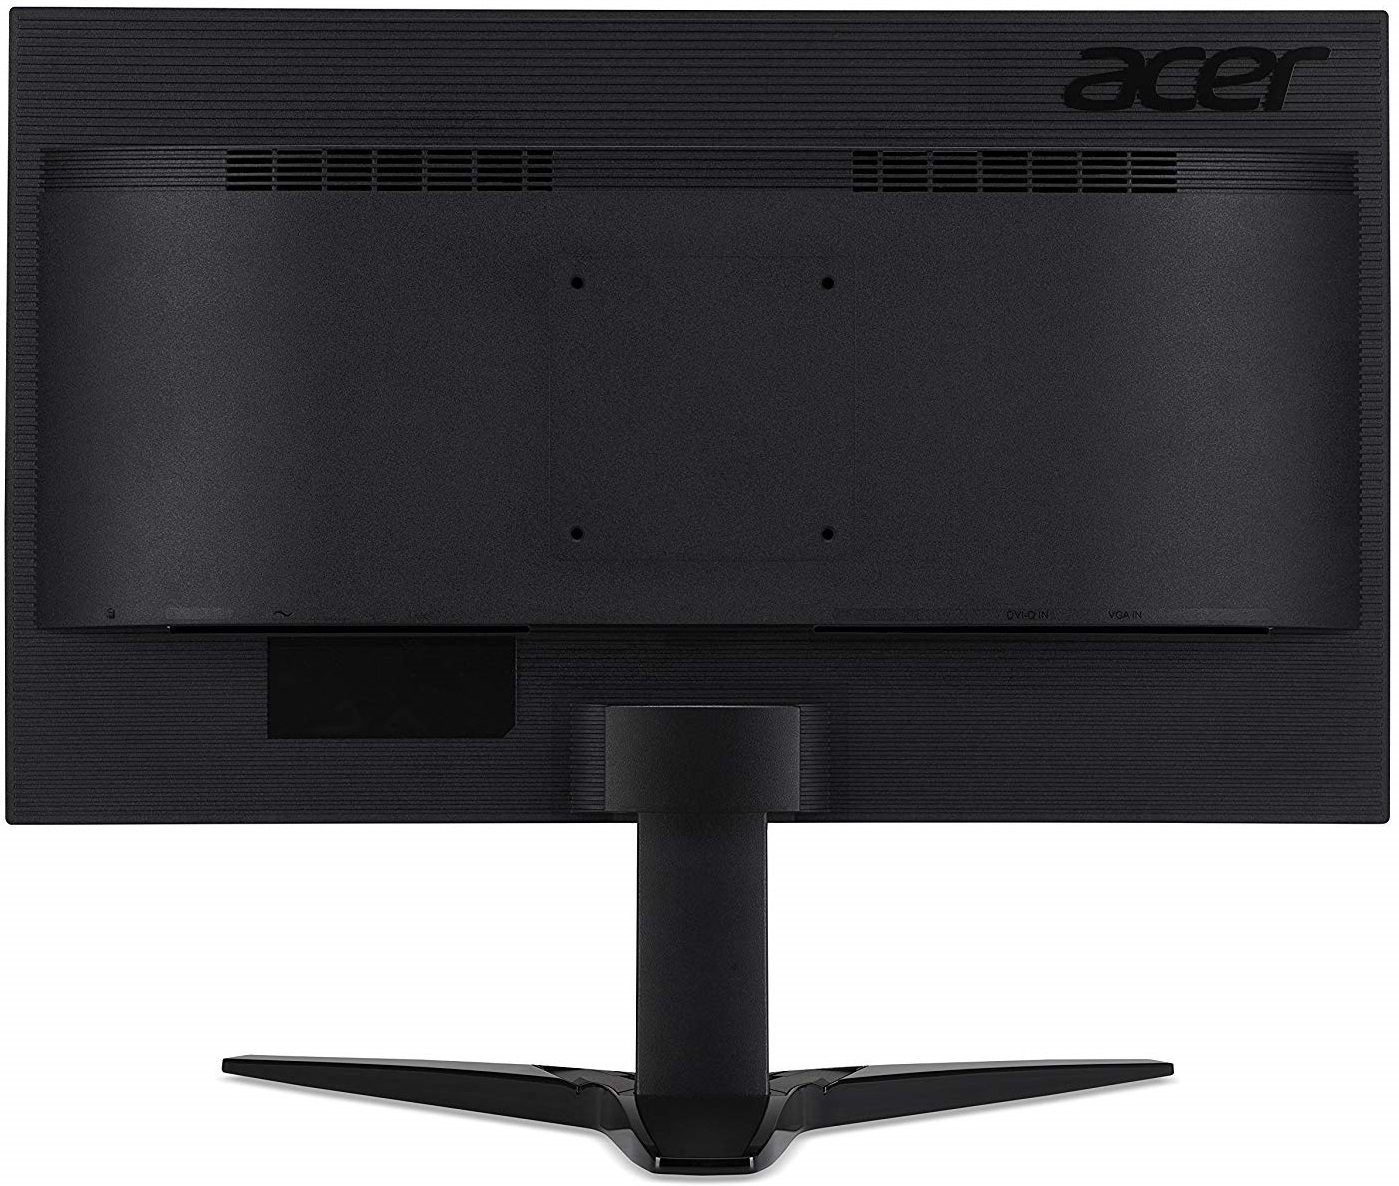 "24.5"" Acer 1ms 75hz FreeSync Gaming Monitor image"